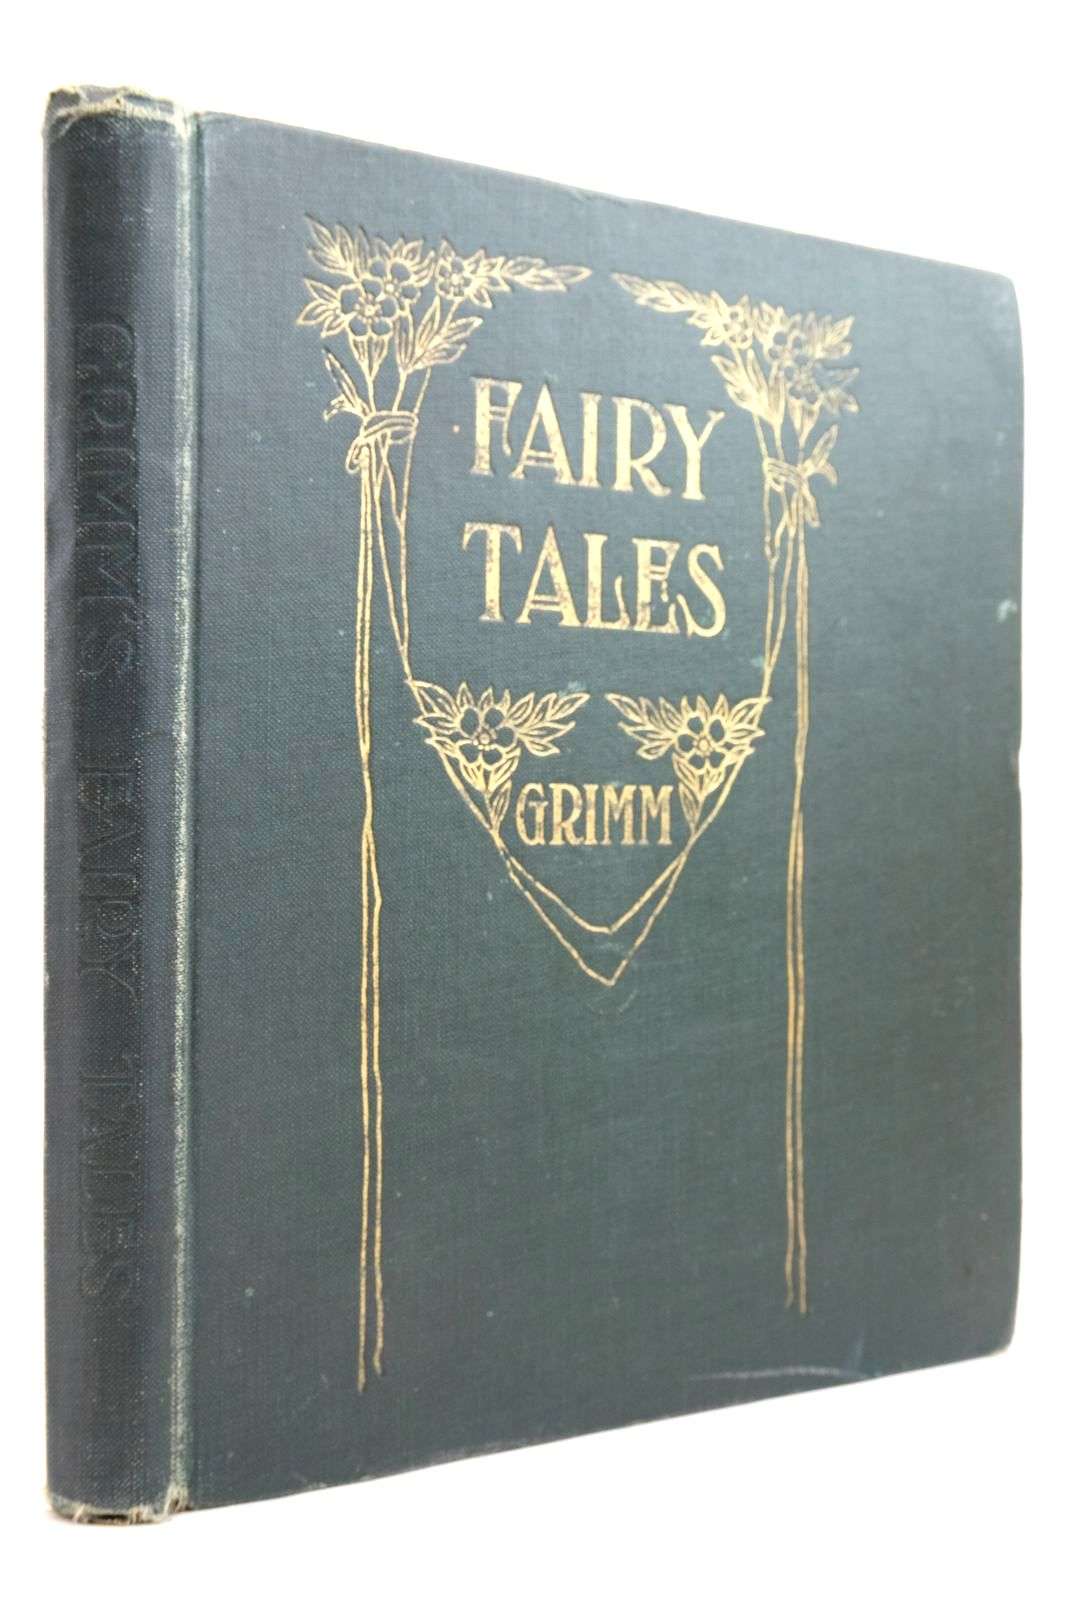 Photo of GRIMM'S FAIRY TALES RETOLD IN ONE-SYLLABLE WORDS written by Grimm, Brothers published by McLoughlin Bros. (STOCK CODE: 2134588)  for sale by Stella & Rose's Books